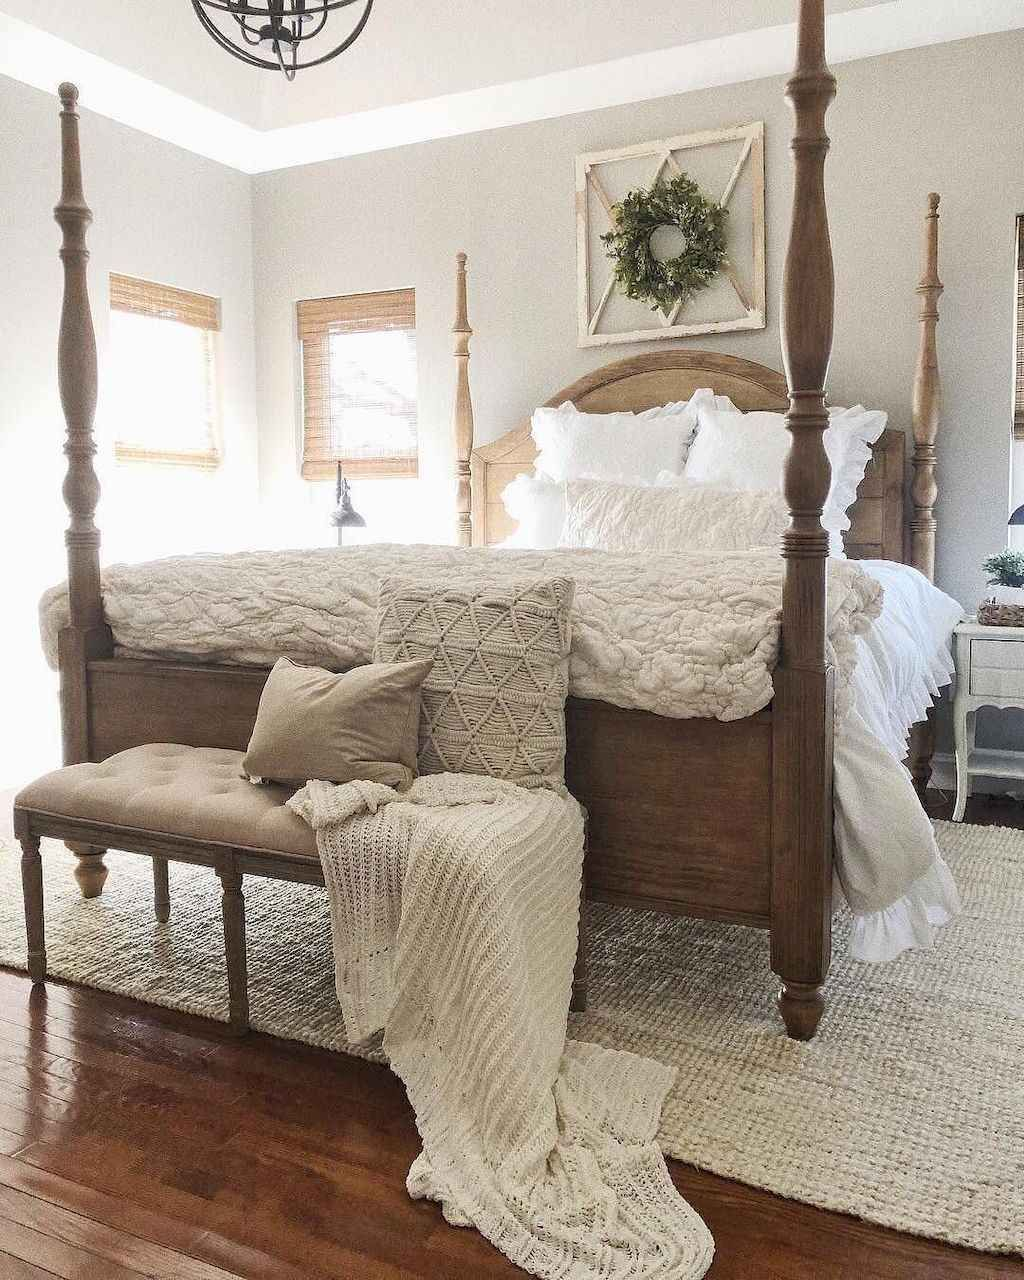 Pin On Master Bedroom Ideas: 31 Romantic Farmhouse Master Bedroom Ideas